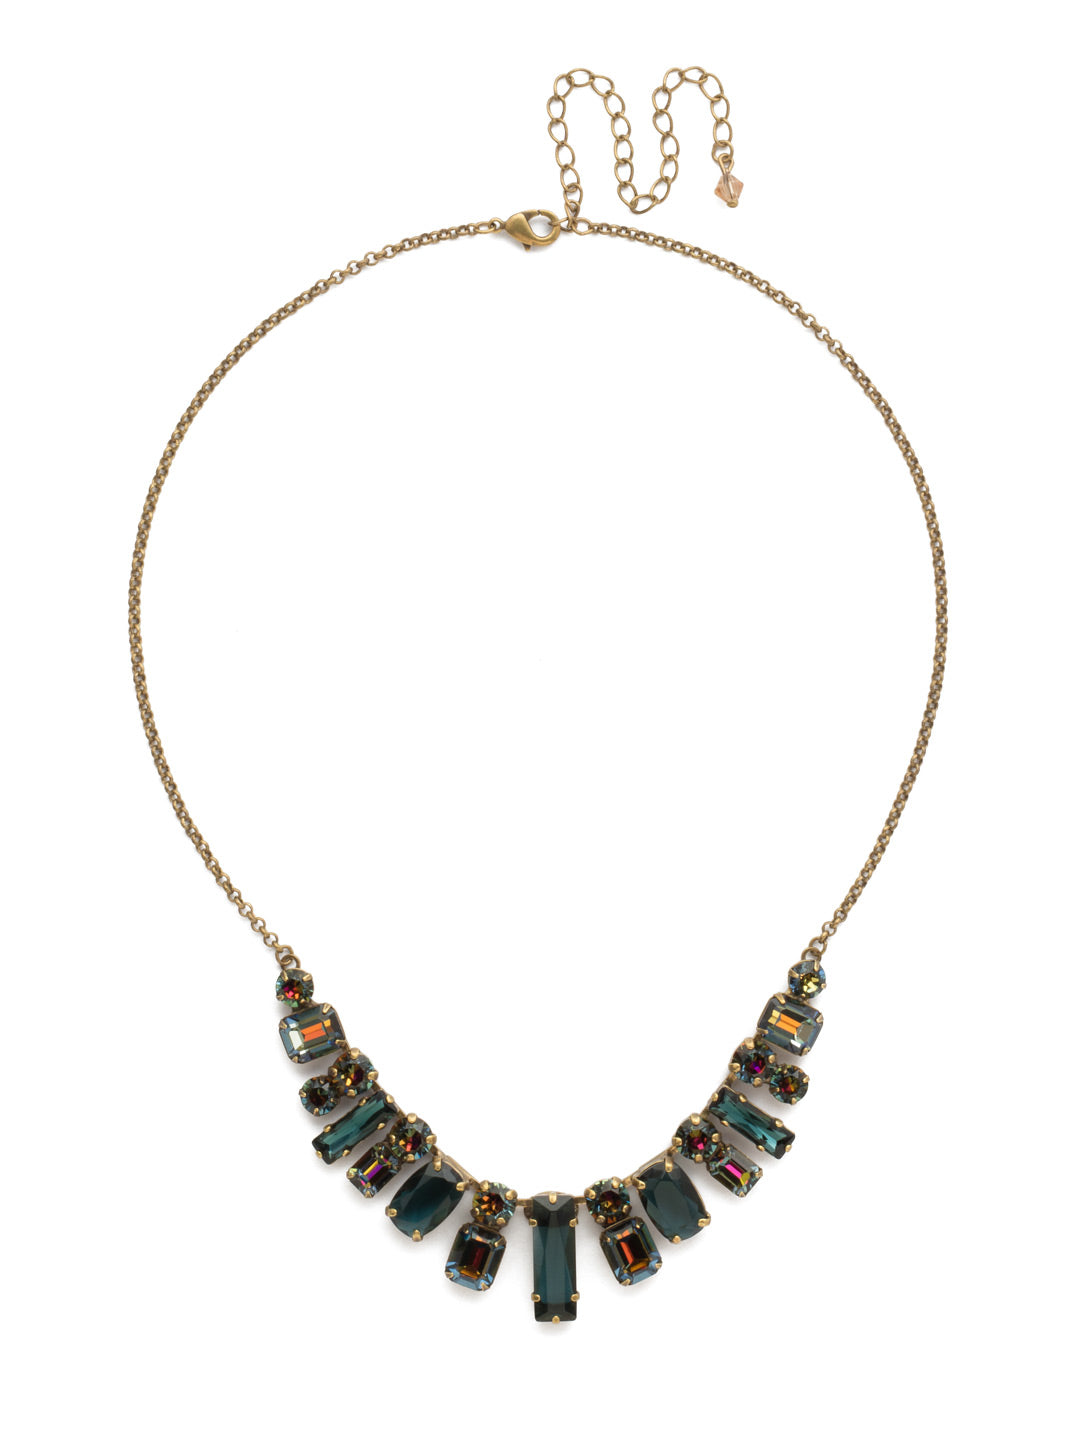 Regal Rectangles Statement Necklace - NCG19AGVO